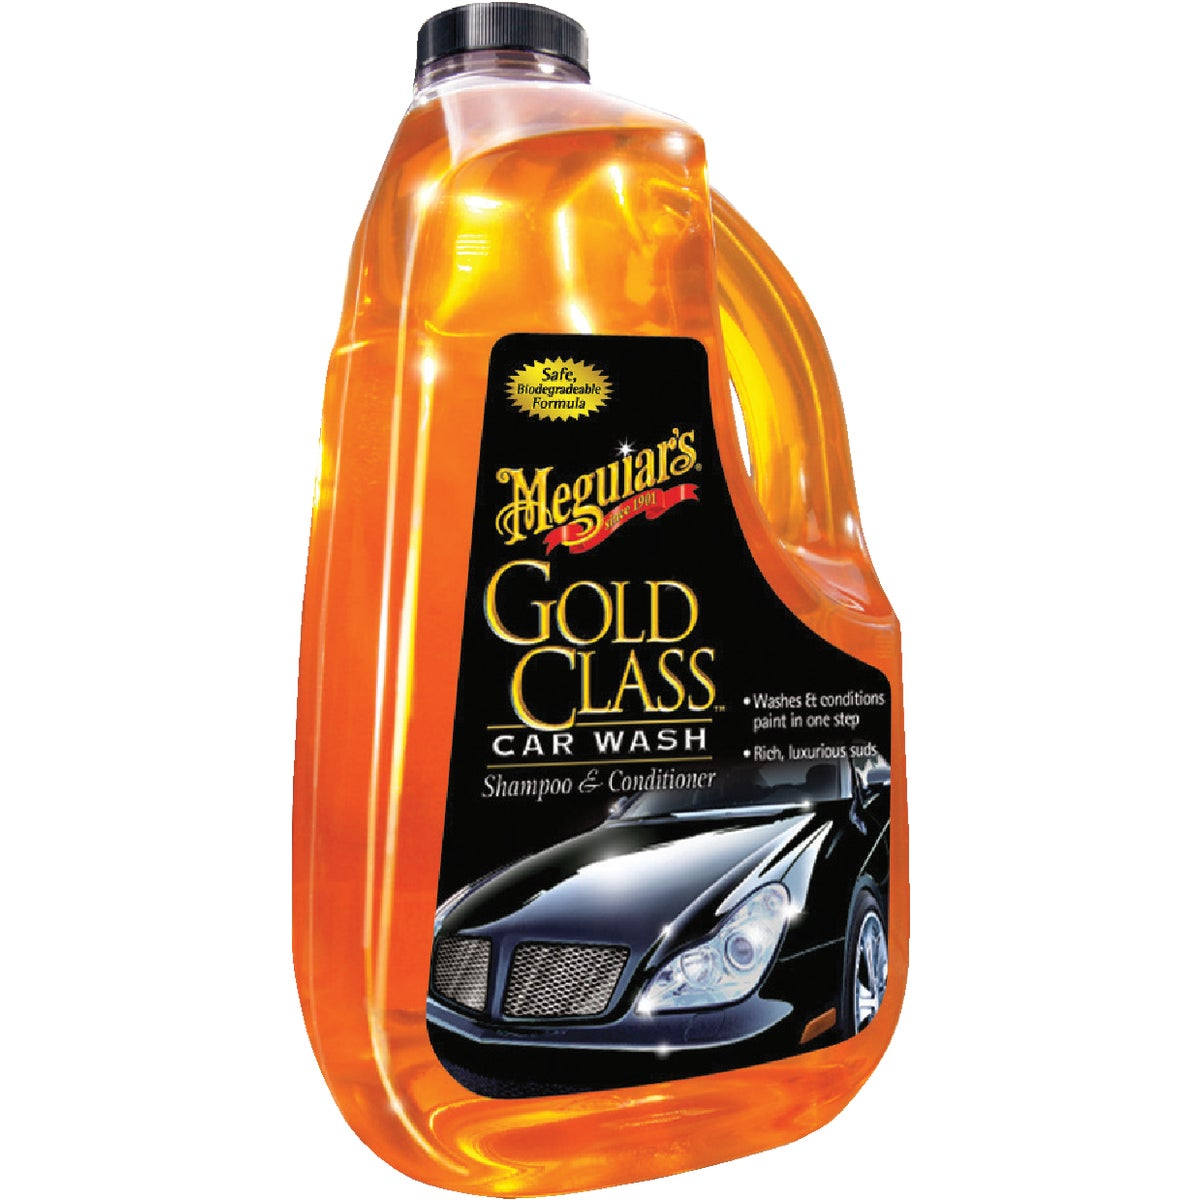 CAR WASH SHAMPOO - G7164 by Meguiars Inc